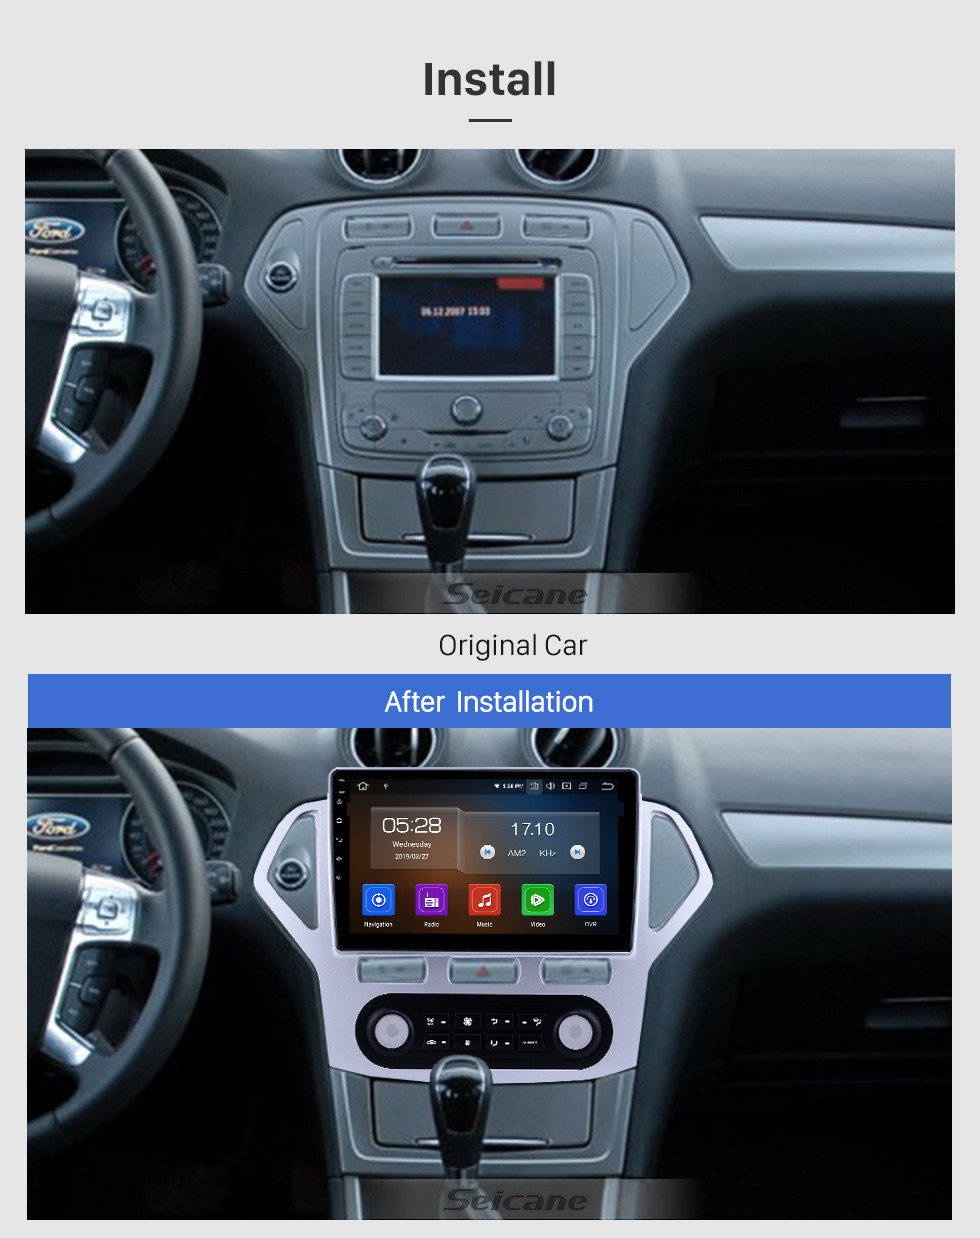 Seicane 10.1 inch Android 9.0 Radio for 2007-2010 Ford Mondeo-Zhisheng Auto A/C Bluetooth HD Touchscreen GPS Navigation Carplay USB support TPMS OBD2